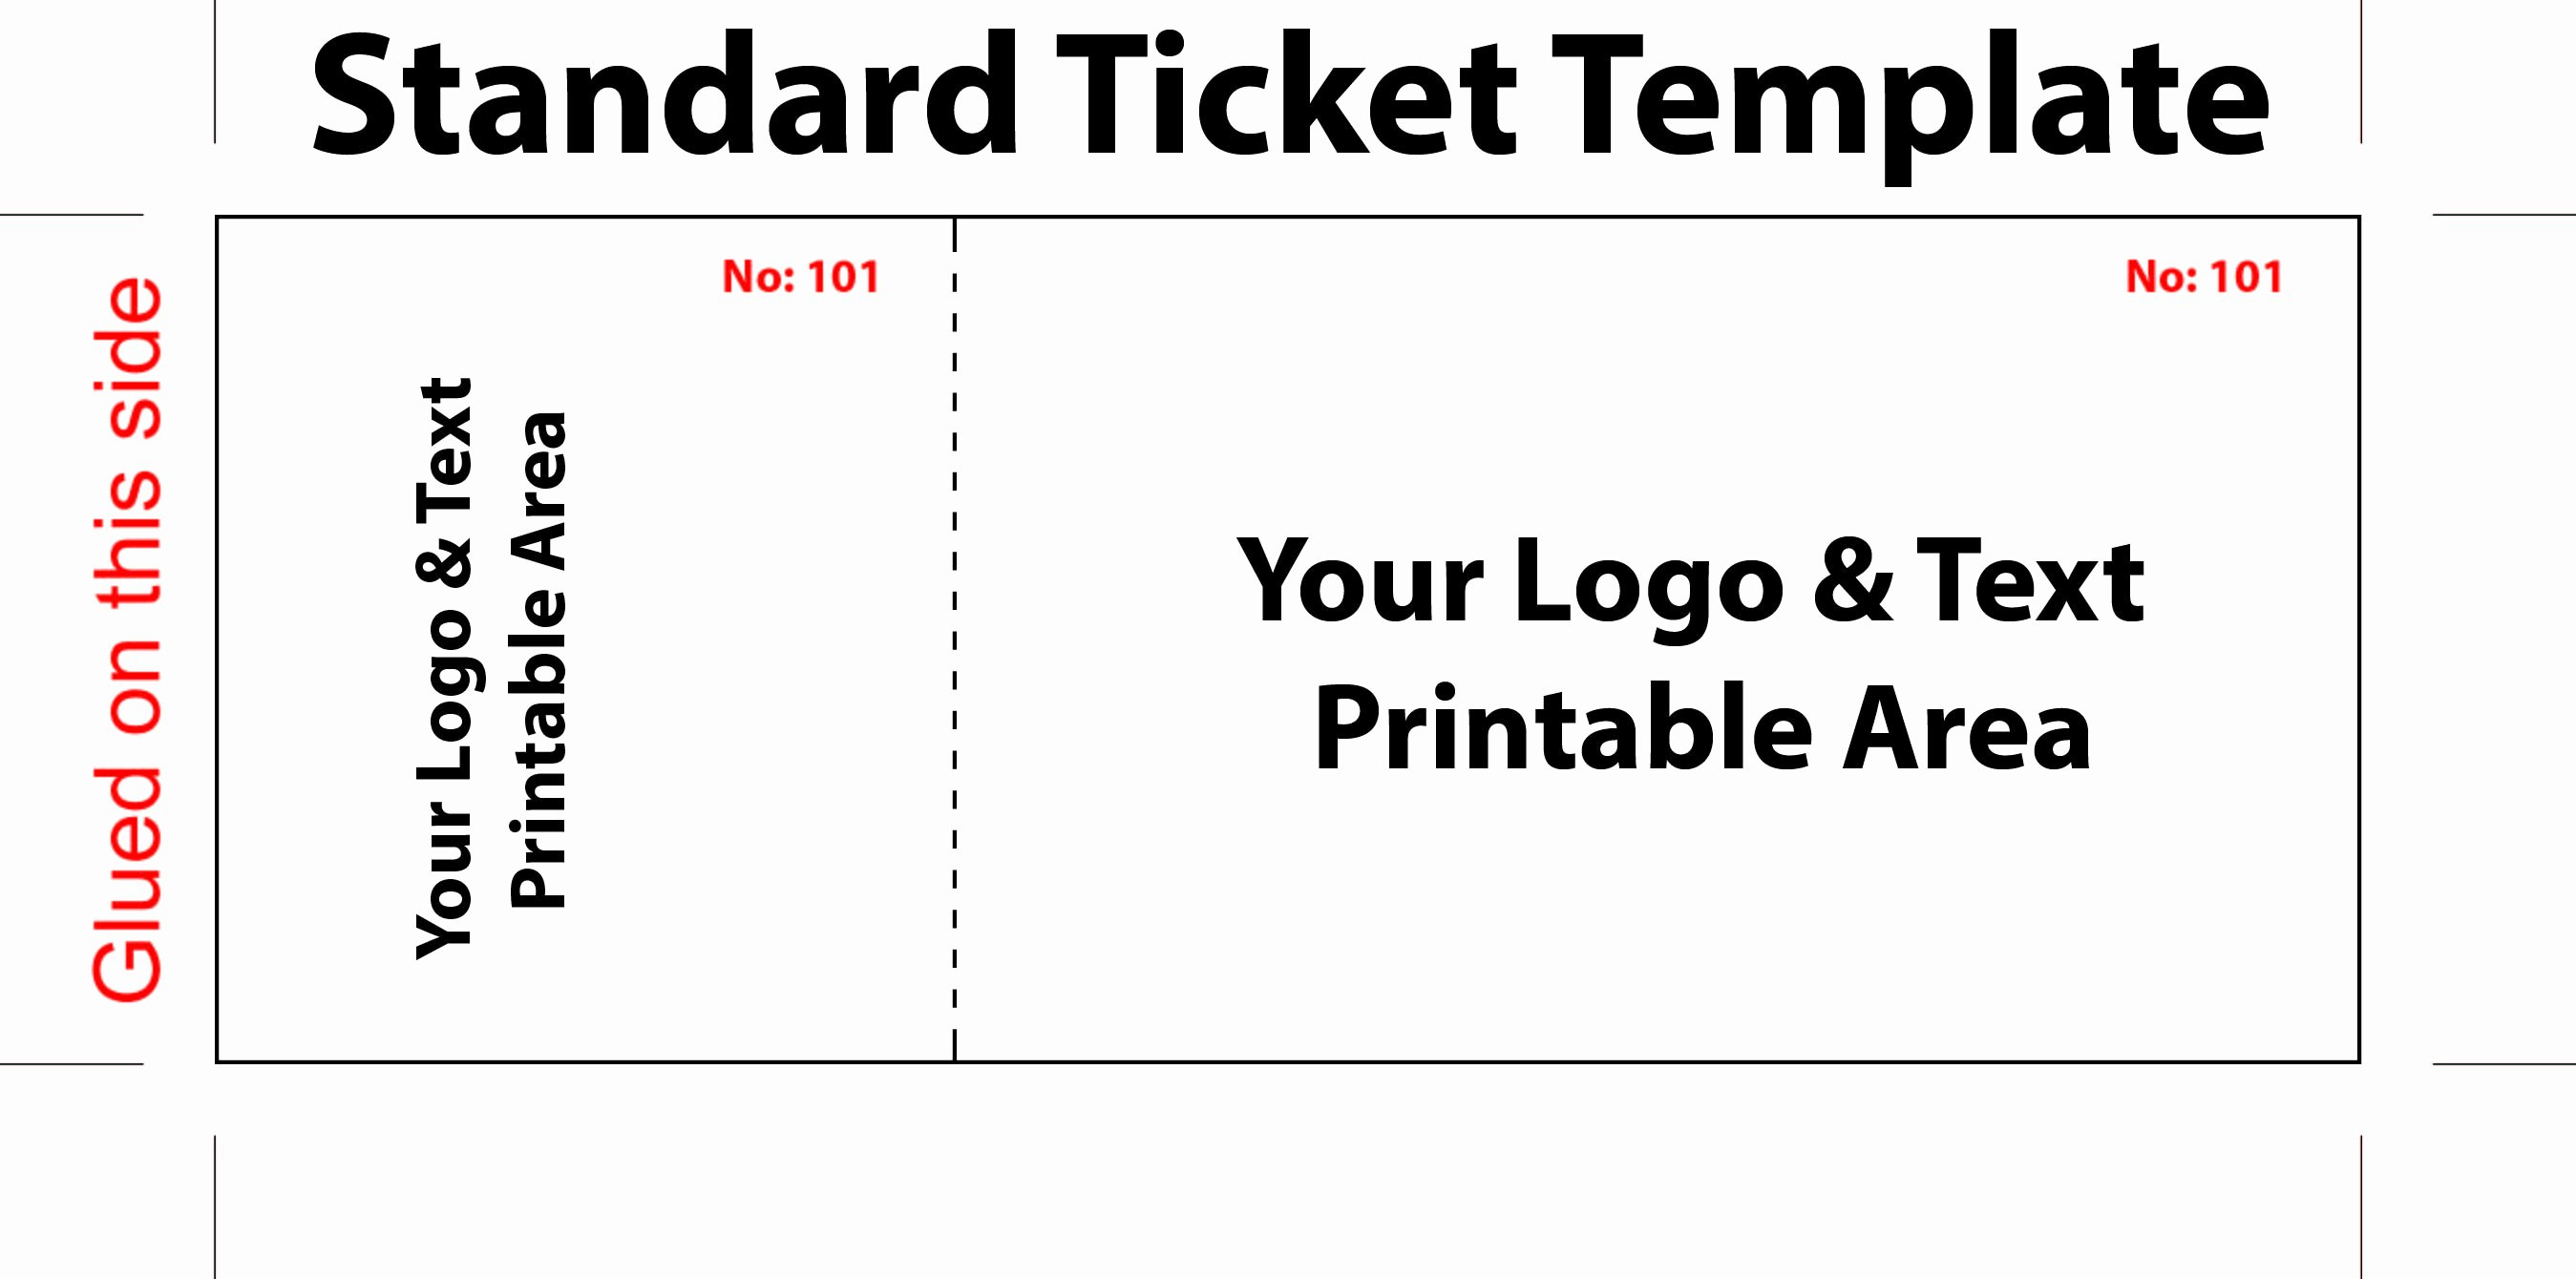 Plane Ticket Template Word Elegant Free Editable Standard Ticket Template Example for Concert